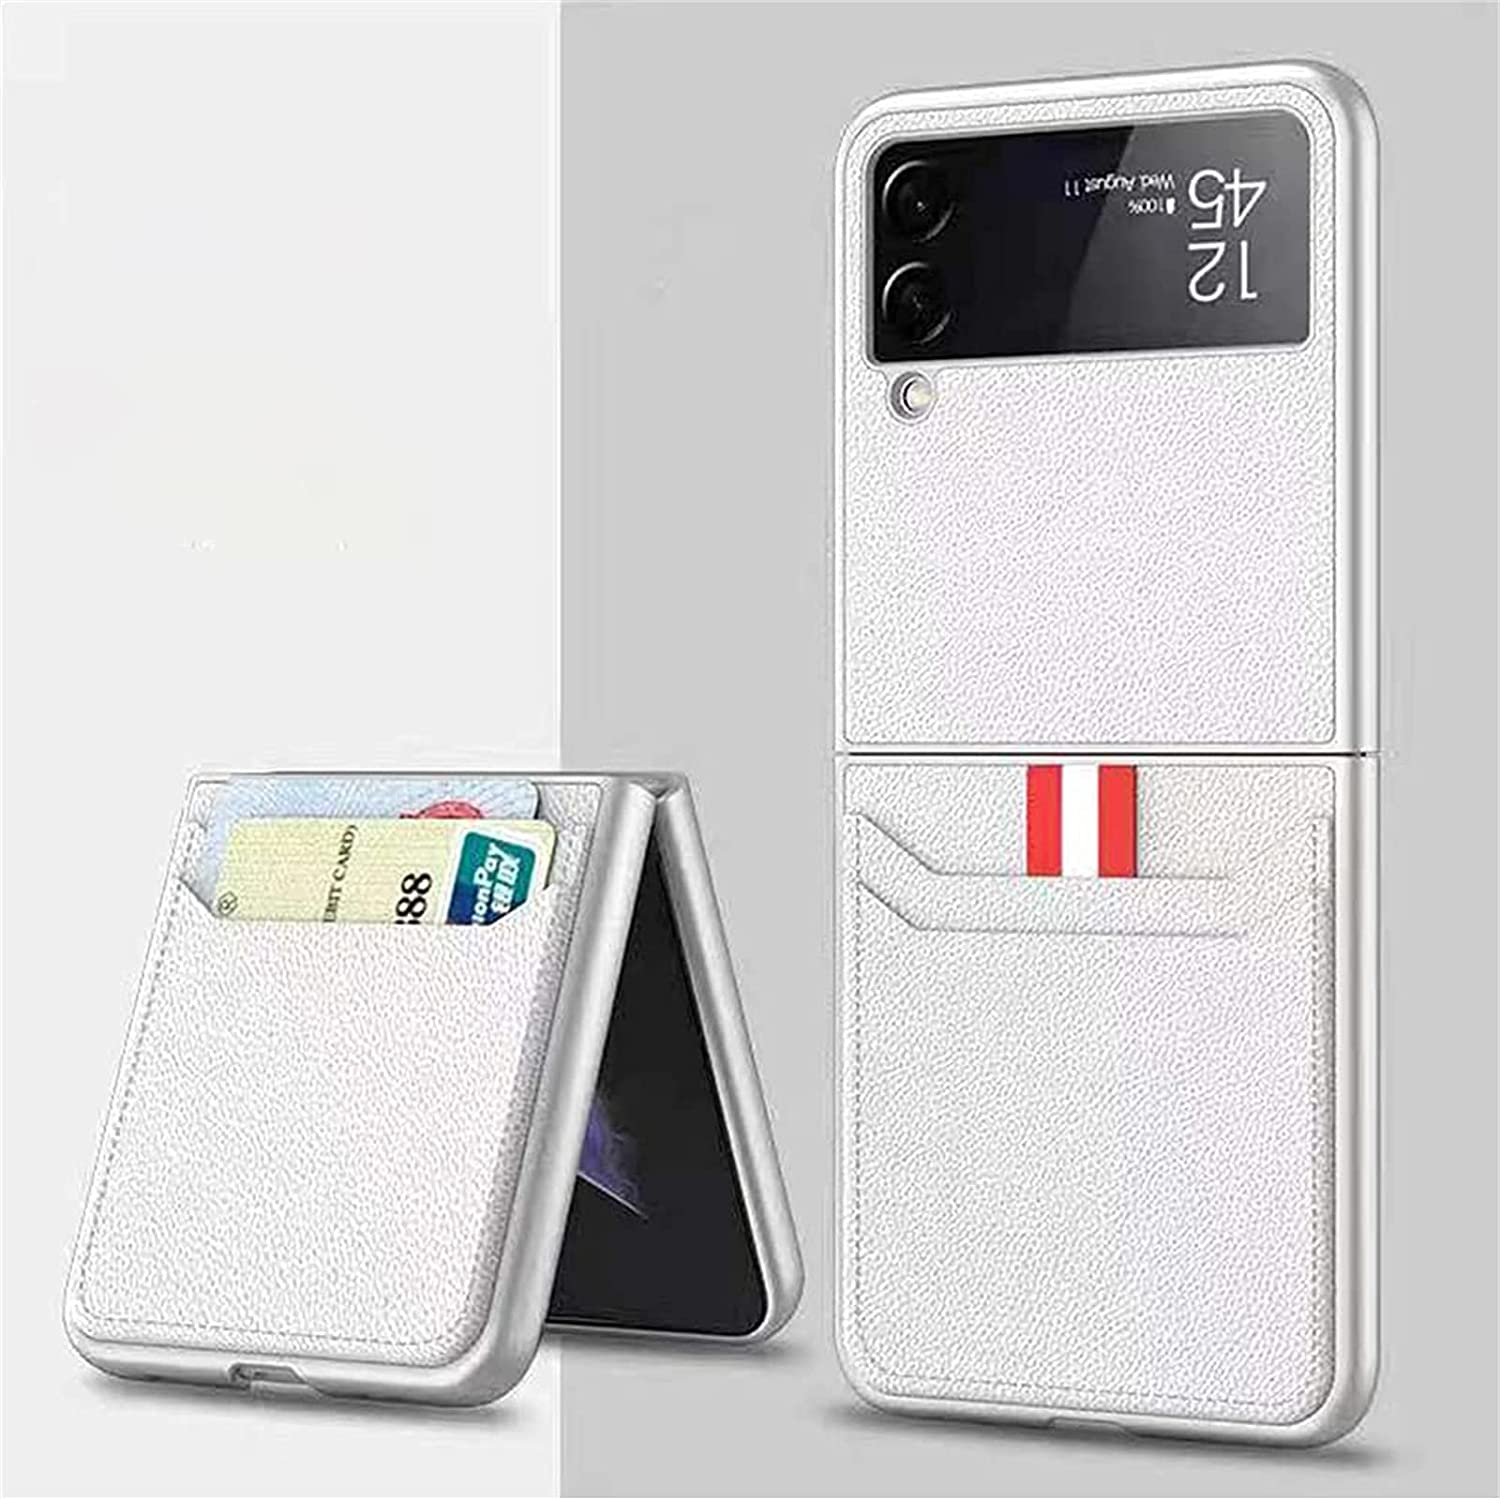 KKJL for Samsung Galaxy Z Flip 3 5G Case, Leather Lightweight Cover Full Protective Cases with Wallet Card (White)